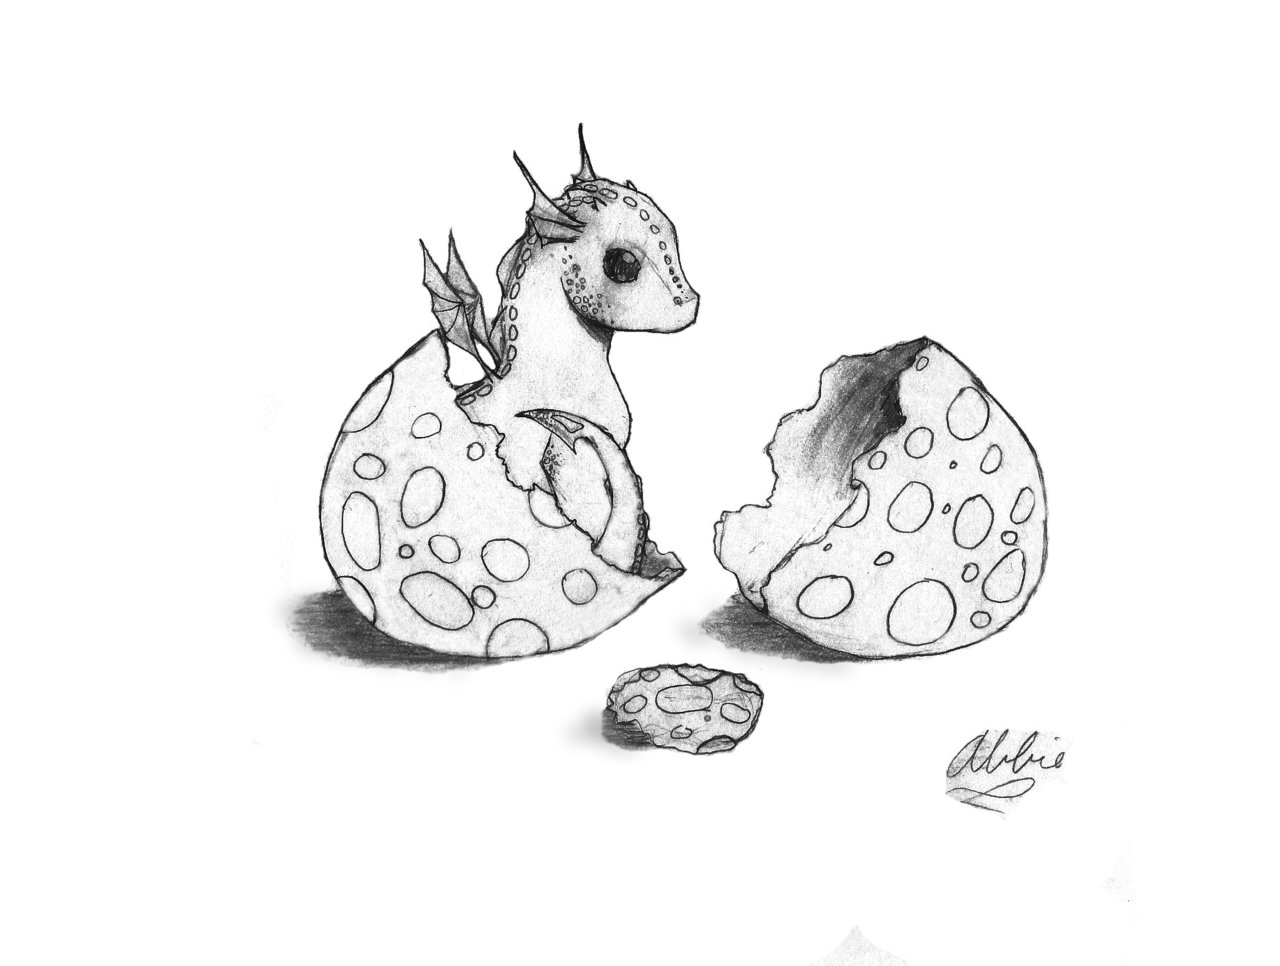 Cartoon Llama Drawing At Getdrawings Com Free For Personal Use